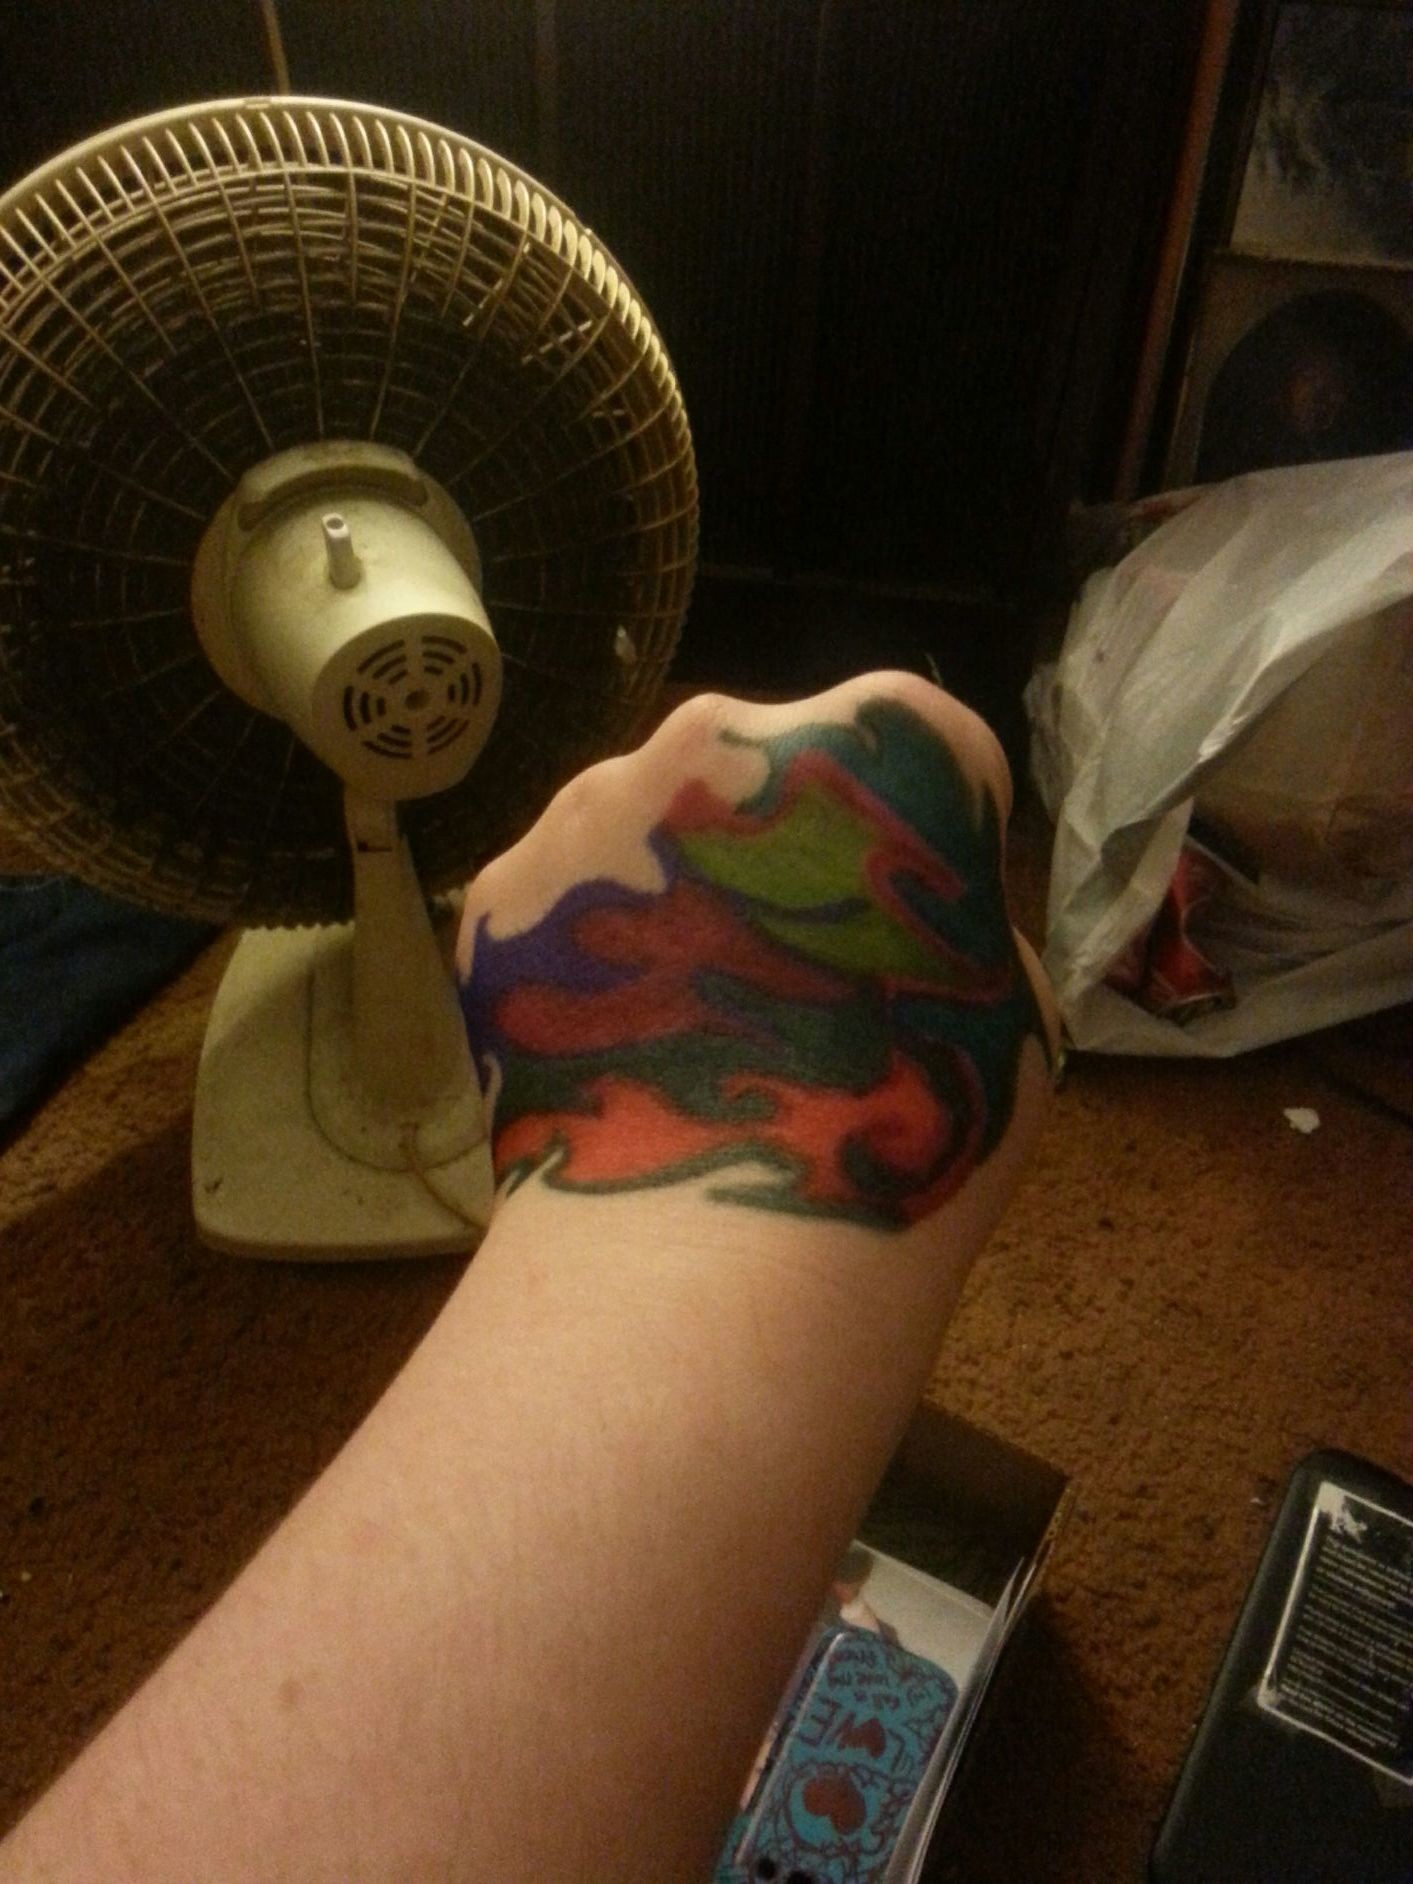 I drew this on my hand because I was bored... What do you think???????????¿¿¿¿¿¿¿¿¿¿¿¿¿¿